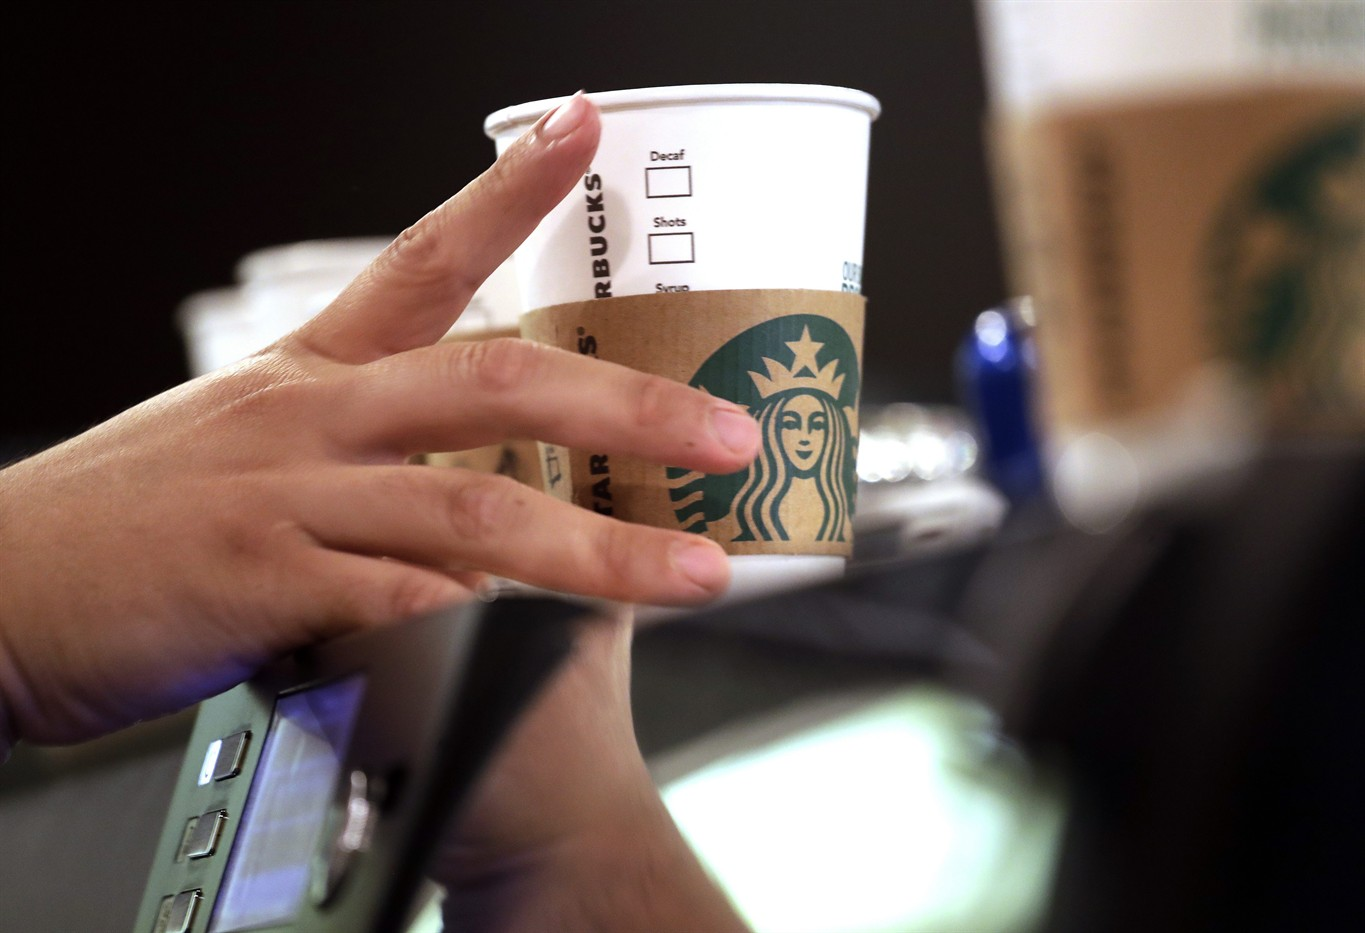 Court starbucks others must pay workers for off clock work 660 file in this may 29 2018 file photo a barista reaches for an empty cup at a starbucks in the pike place market in seattle altavistaventures Choice Image